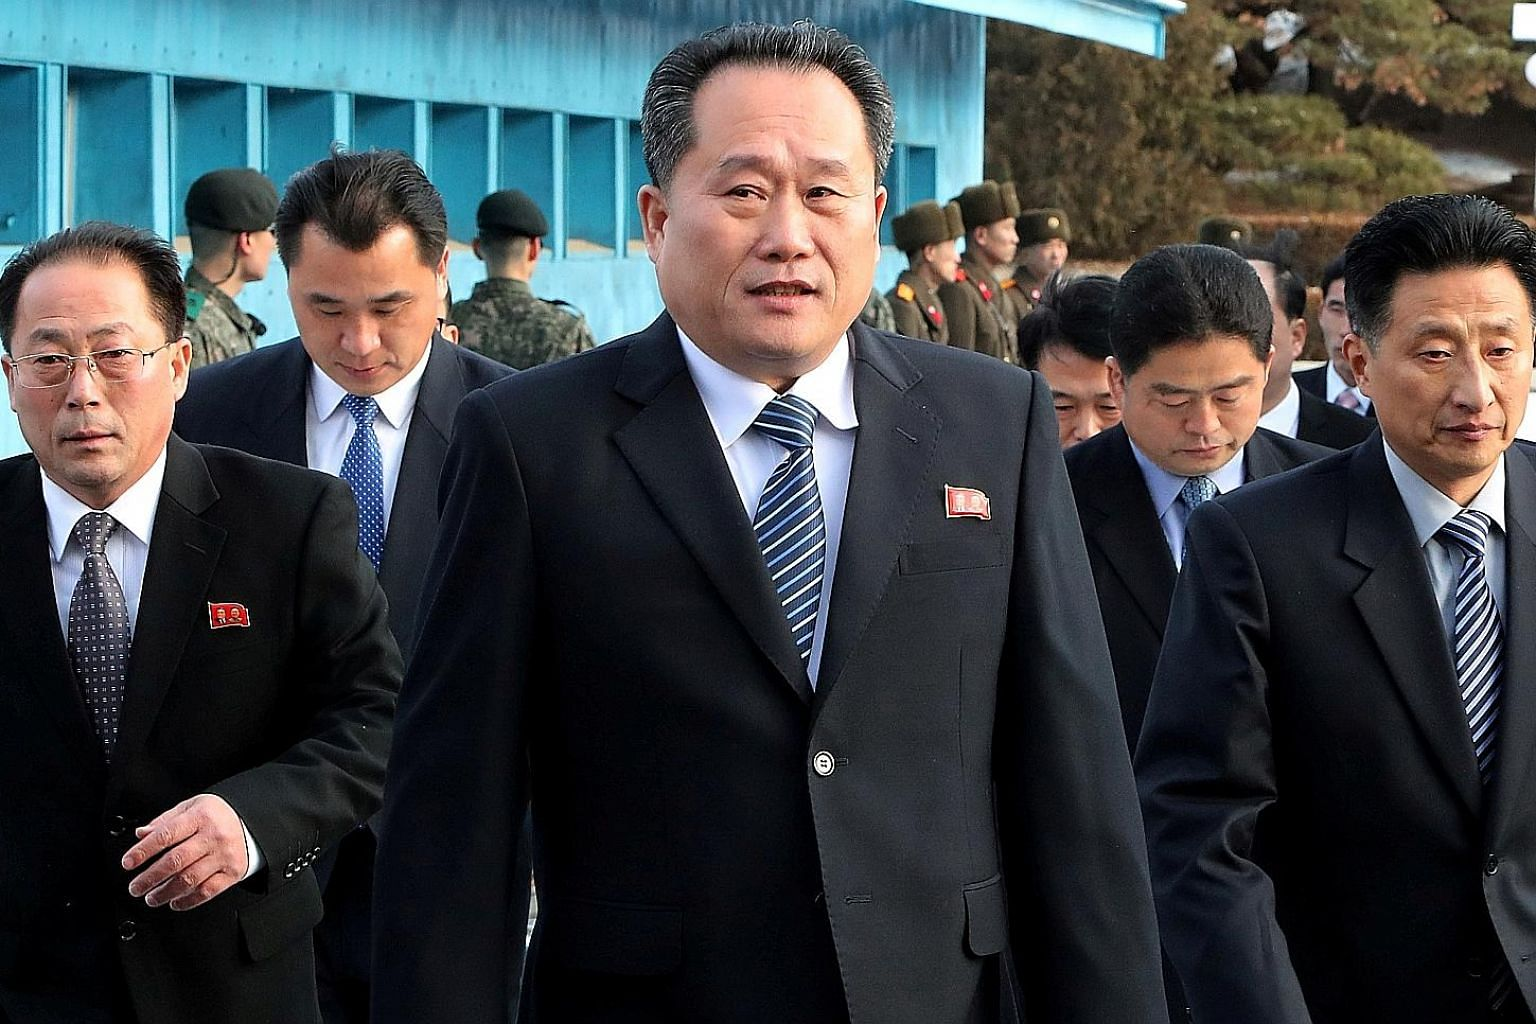 Mr Ri Son Gwon leading a delegation to attend a meeting at the truce village of Panmunjom in the demilitarised zone separating the two Koreas on Jan 9, 2018. Mr Ri was former chairman of the Committee for the Peaceful Reunification of the Fatherland.